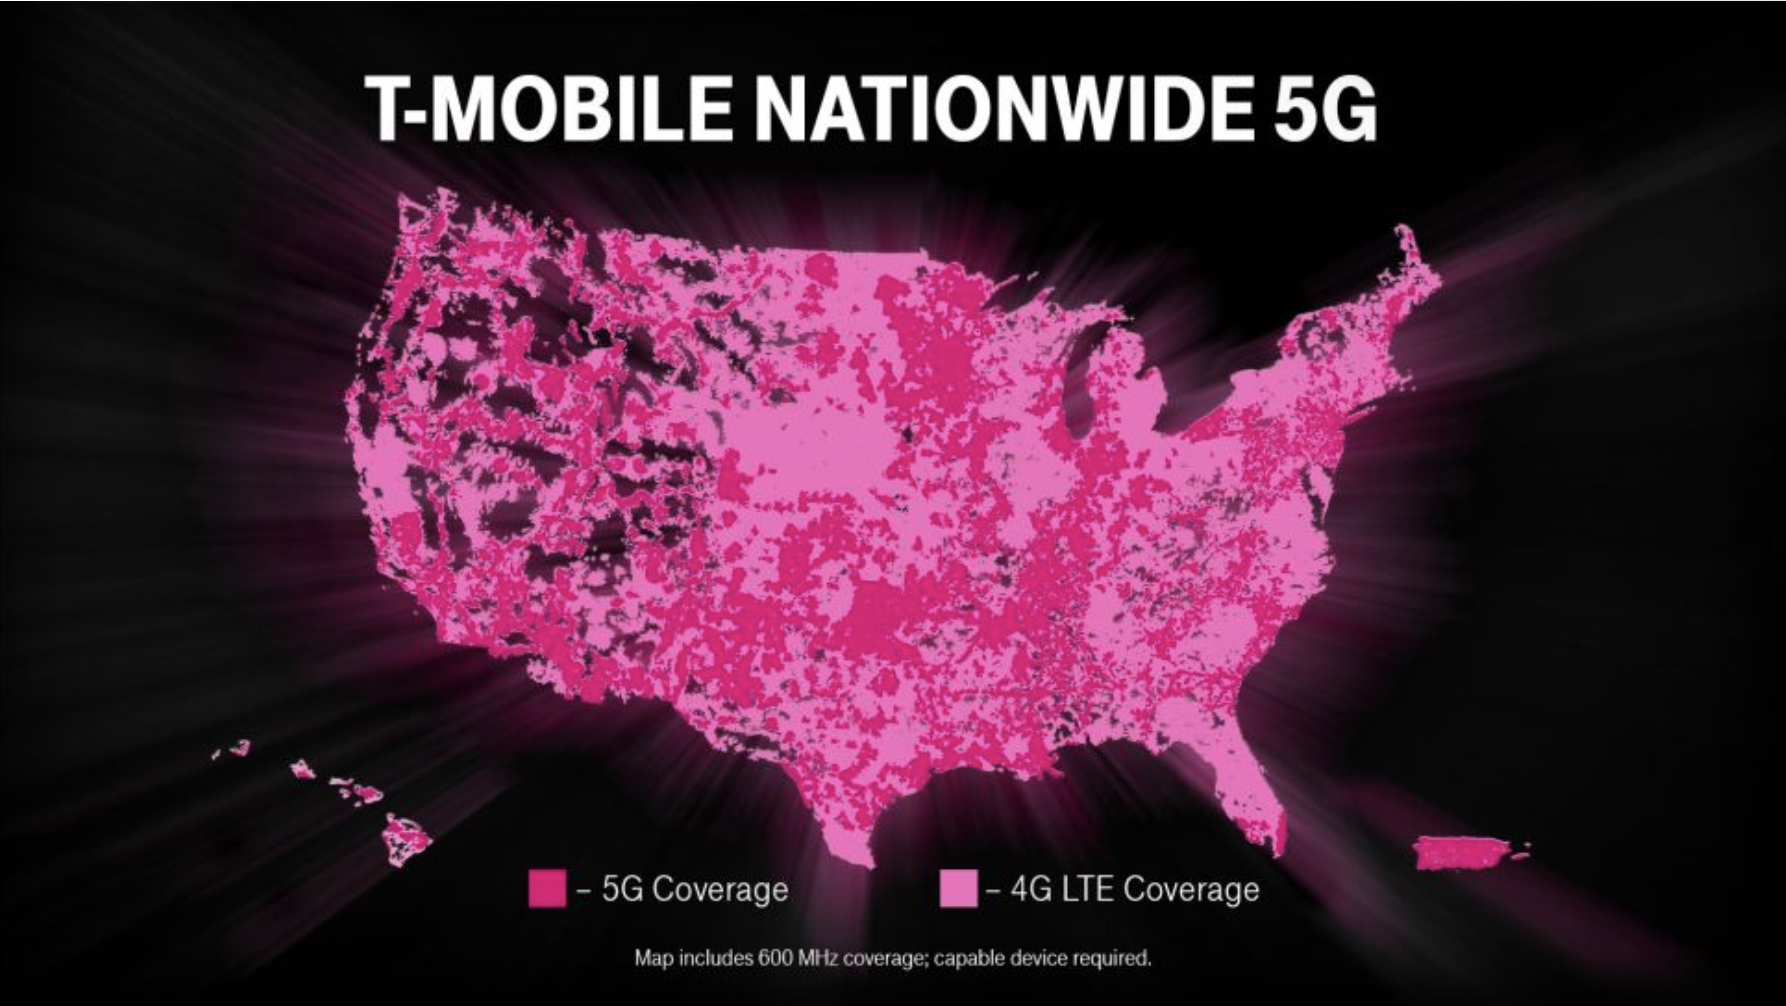 Trickut - Is Mint Mobile Coverage Good - mint mobile mint sim review - t mobile nationwide 5g